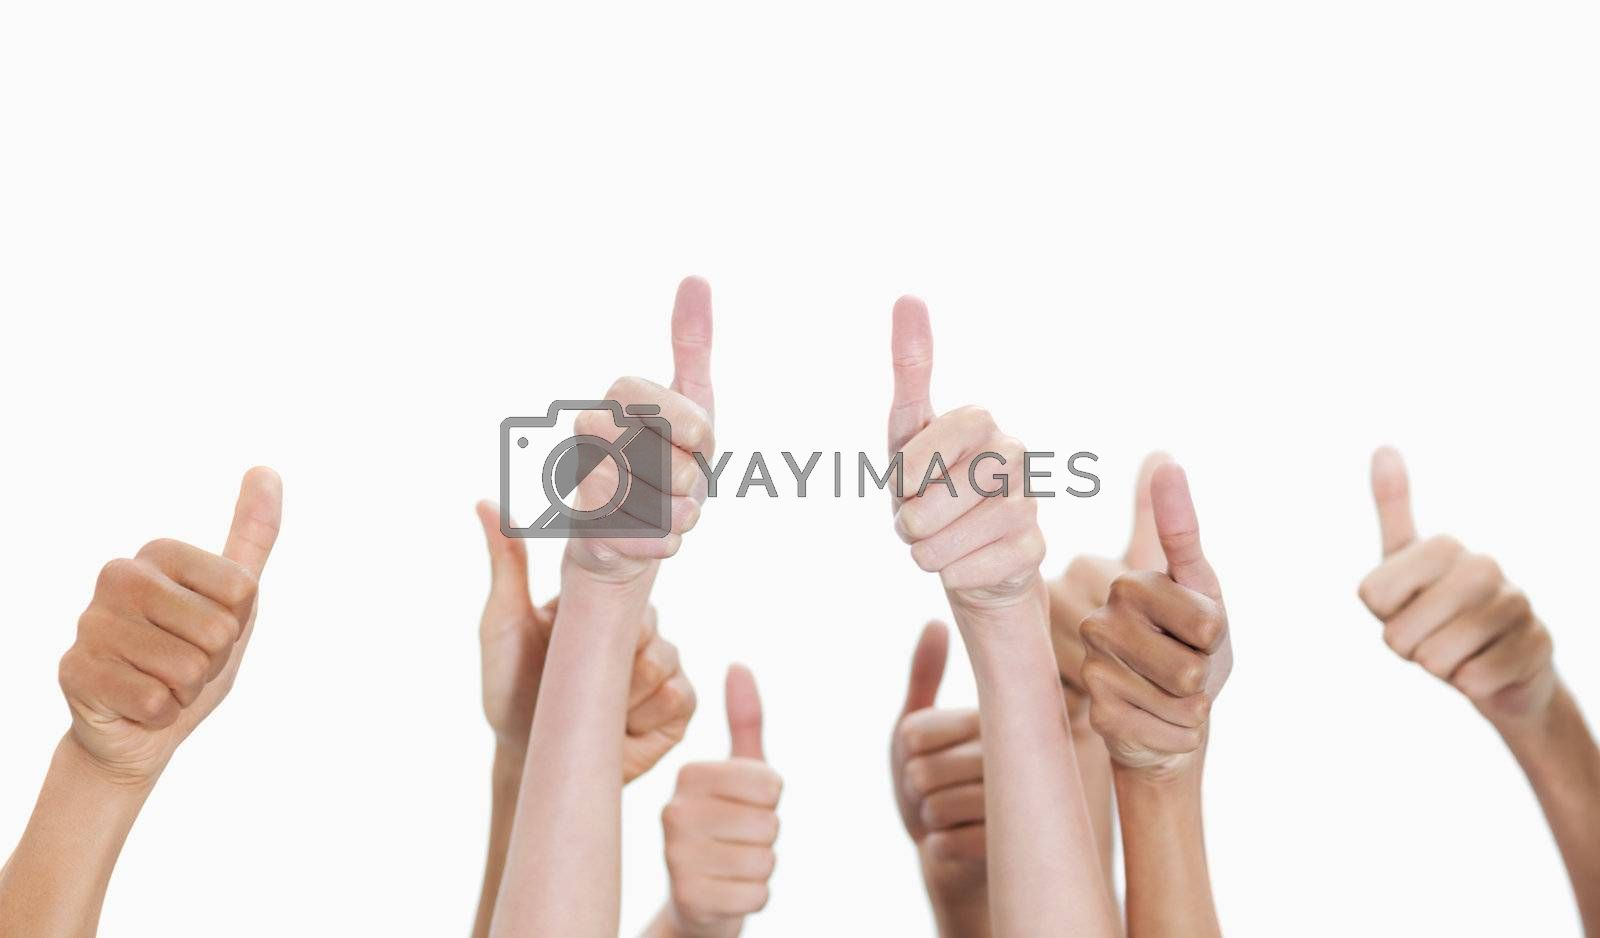 Thumbs-up against white background